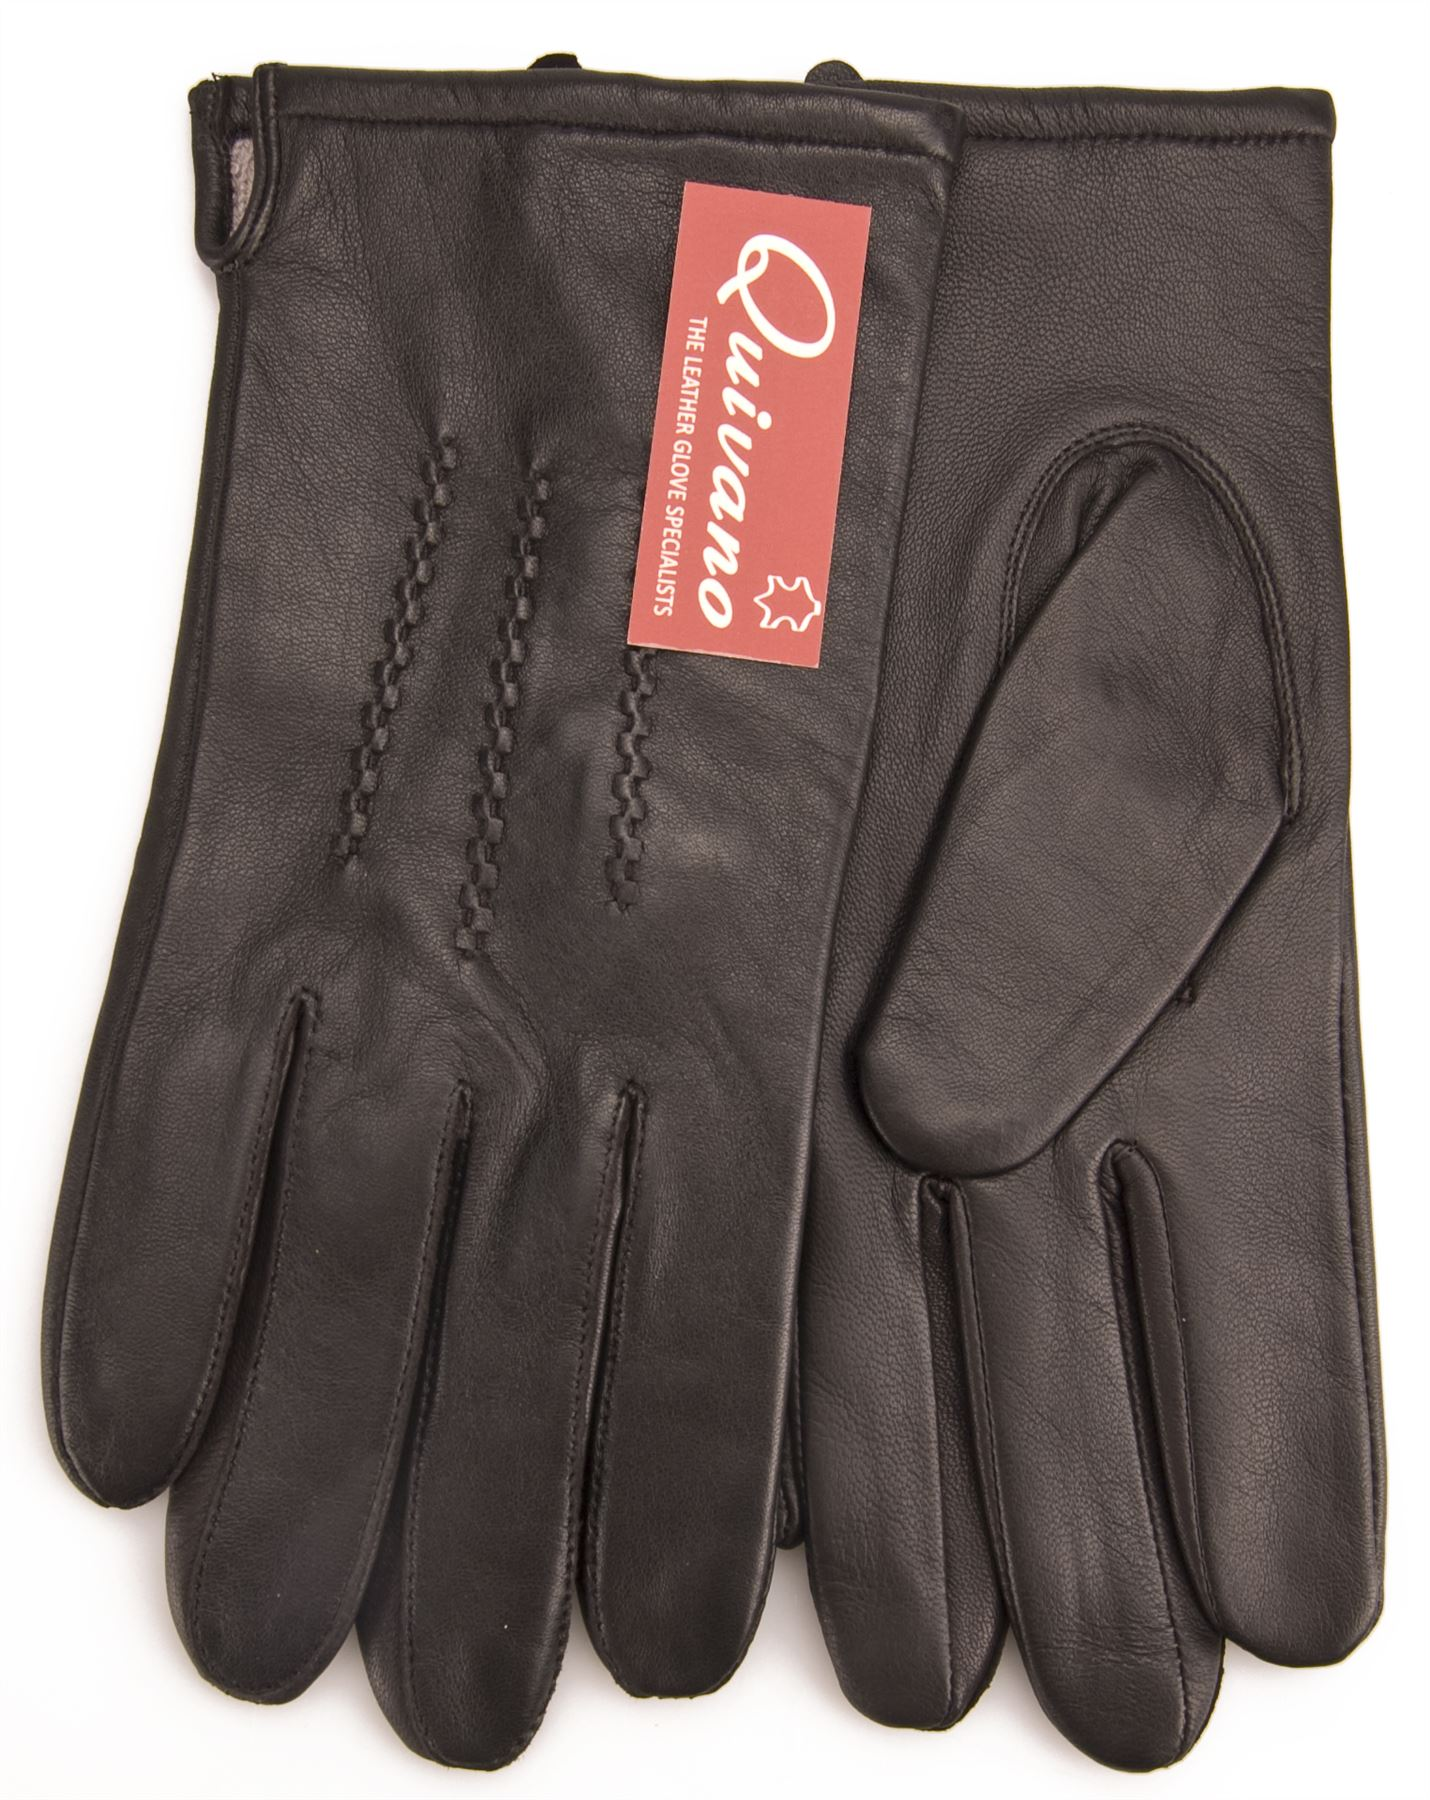 Find mens leather glove soft at ShopStyle. Shop the latest collection of mens leather glove soft from the most popular stores - all in one place.